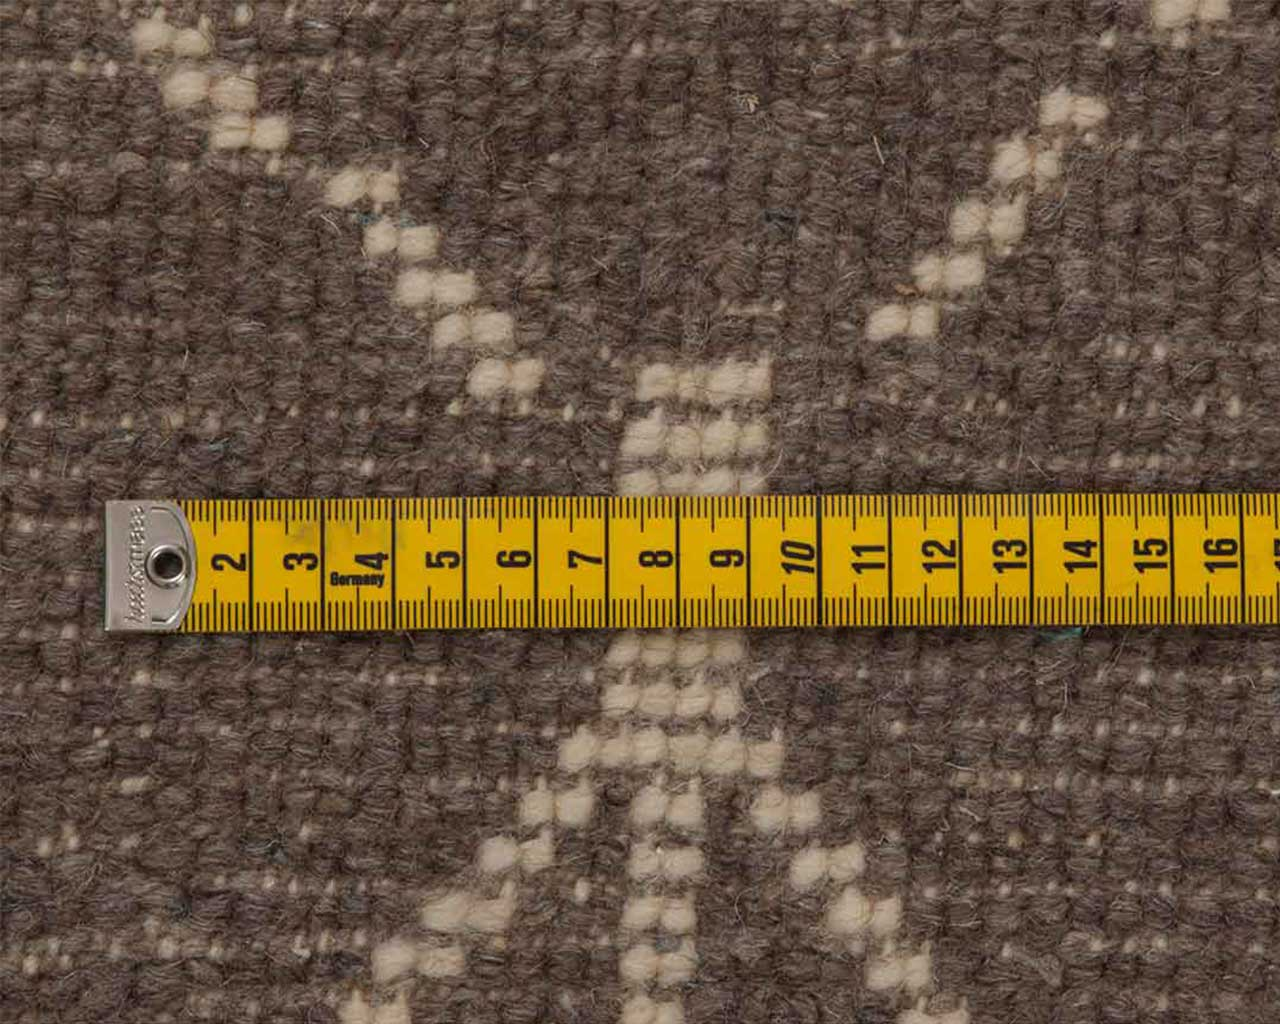 tapeline knots woolen carpet grey color 1